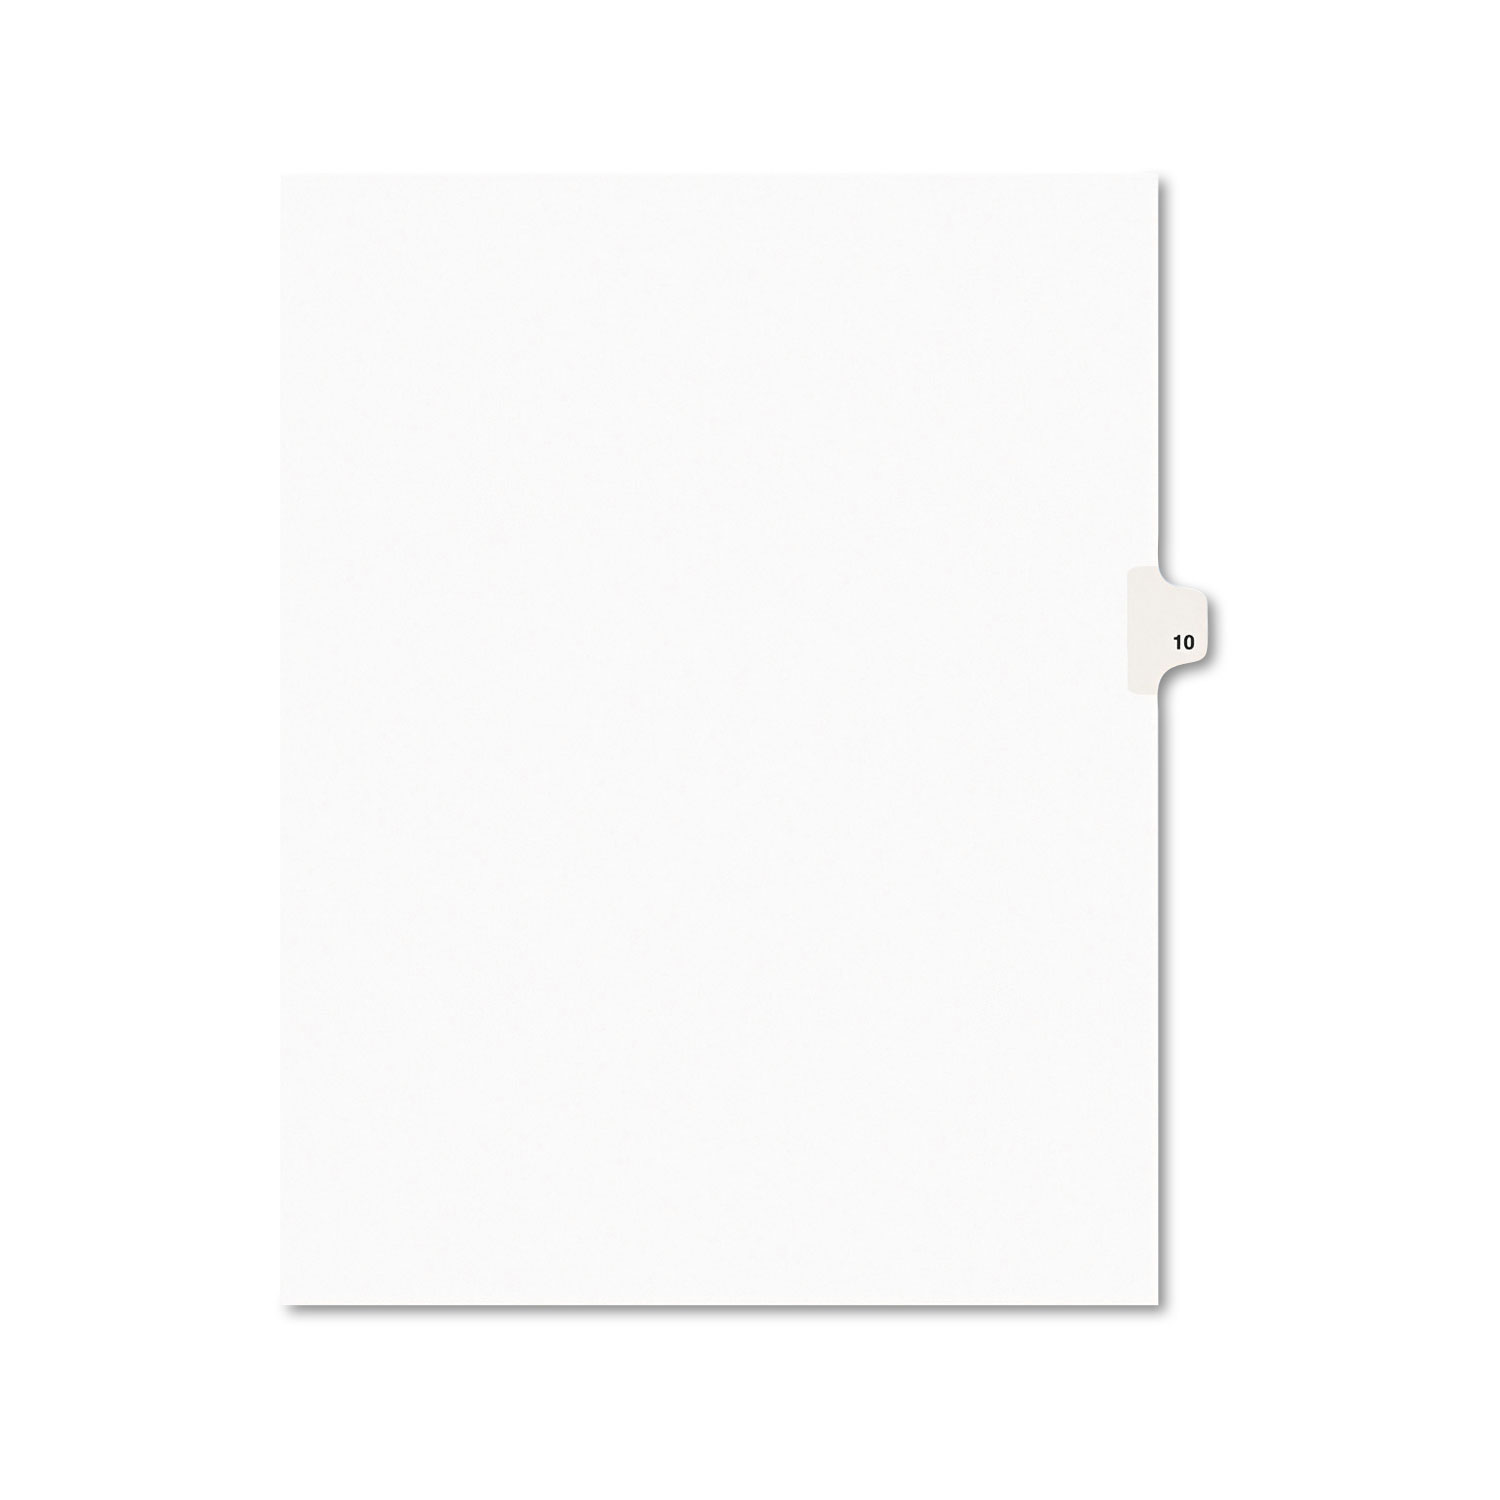 Preprinted Legal Exhibit Side Tab Index Dividers, Avery Style, 10-Tab, 10, 11 x 8.5, White, 25/Pack